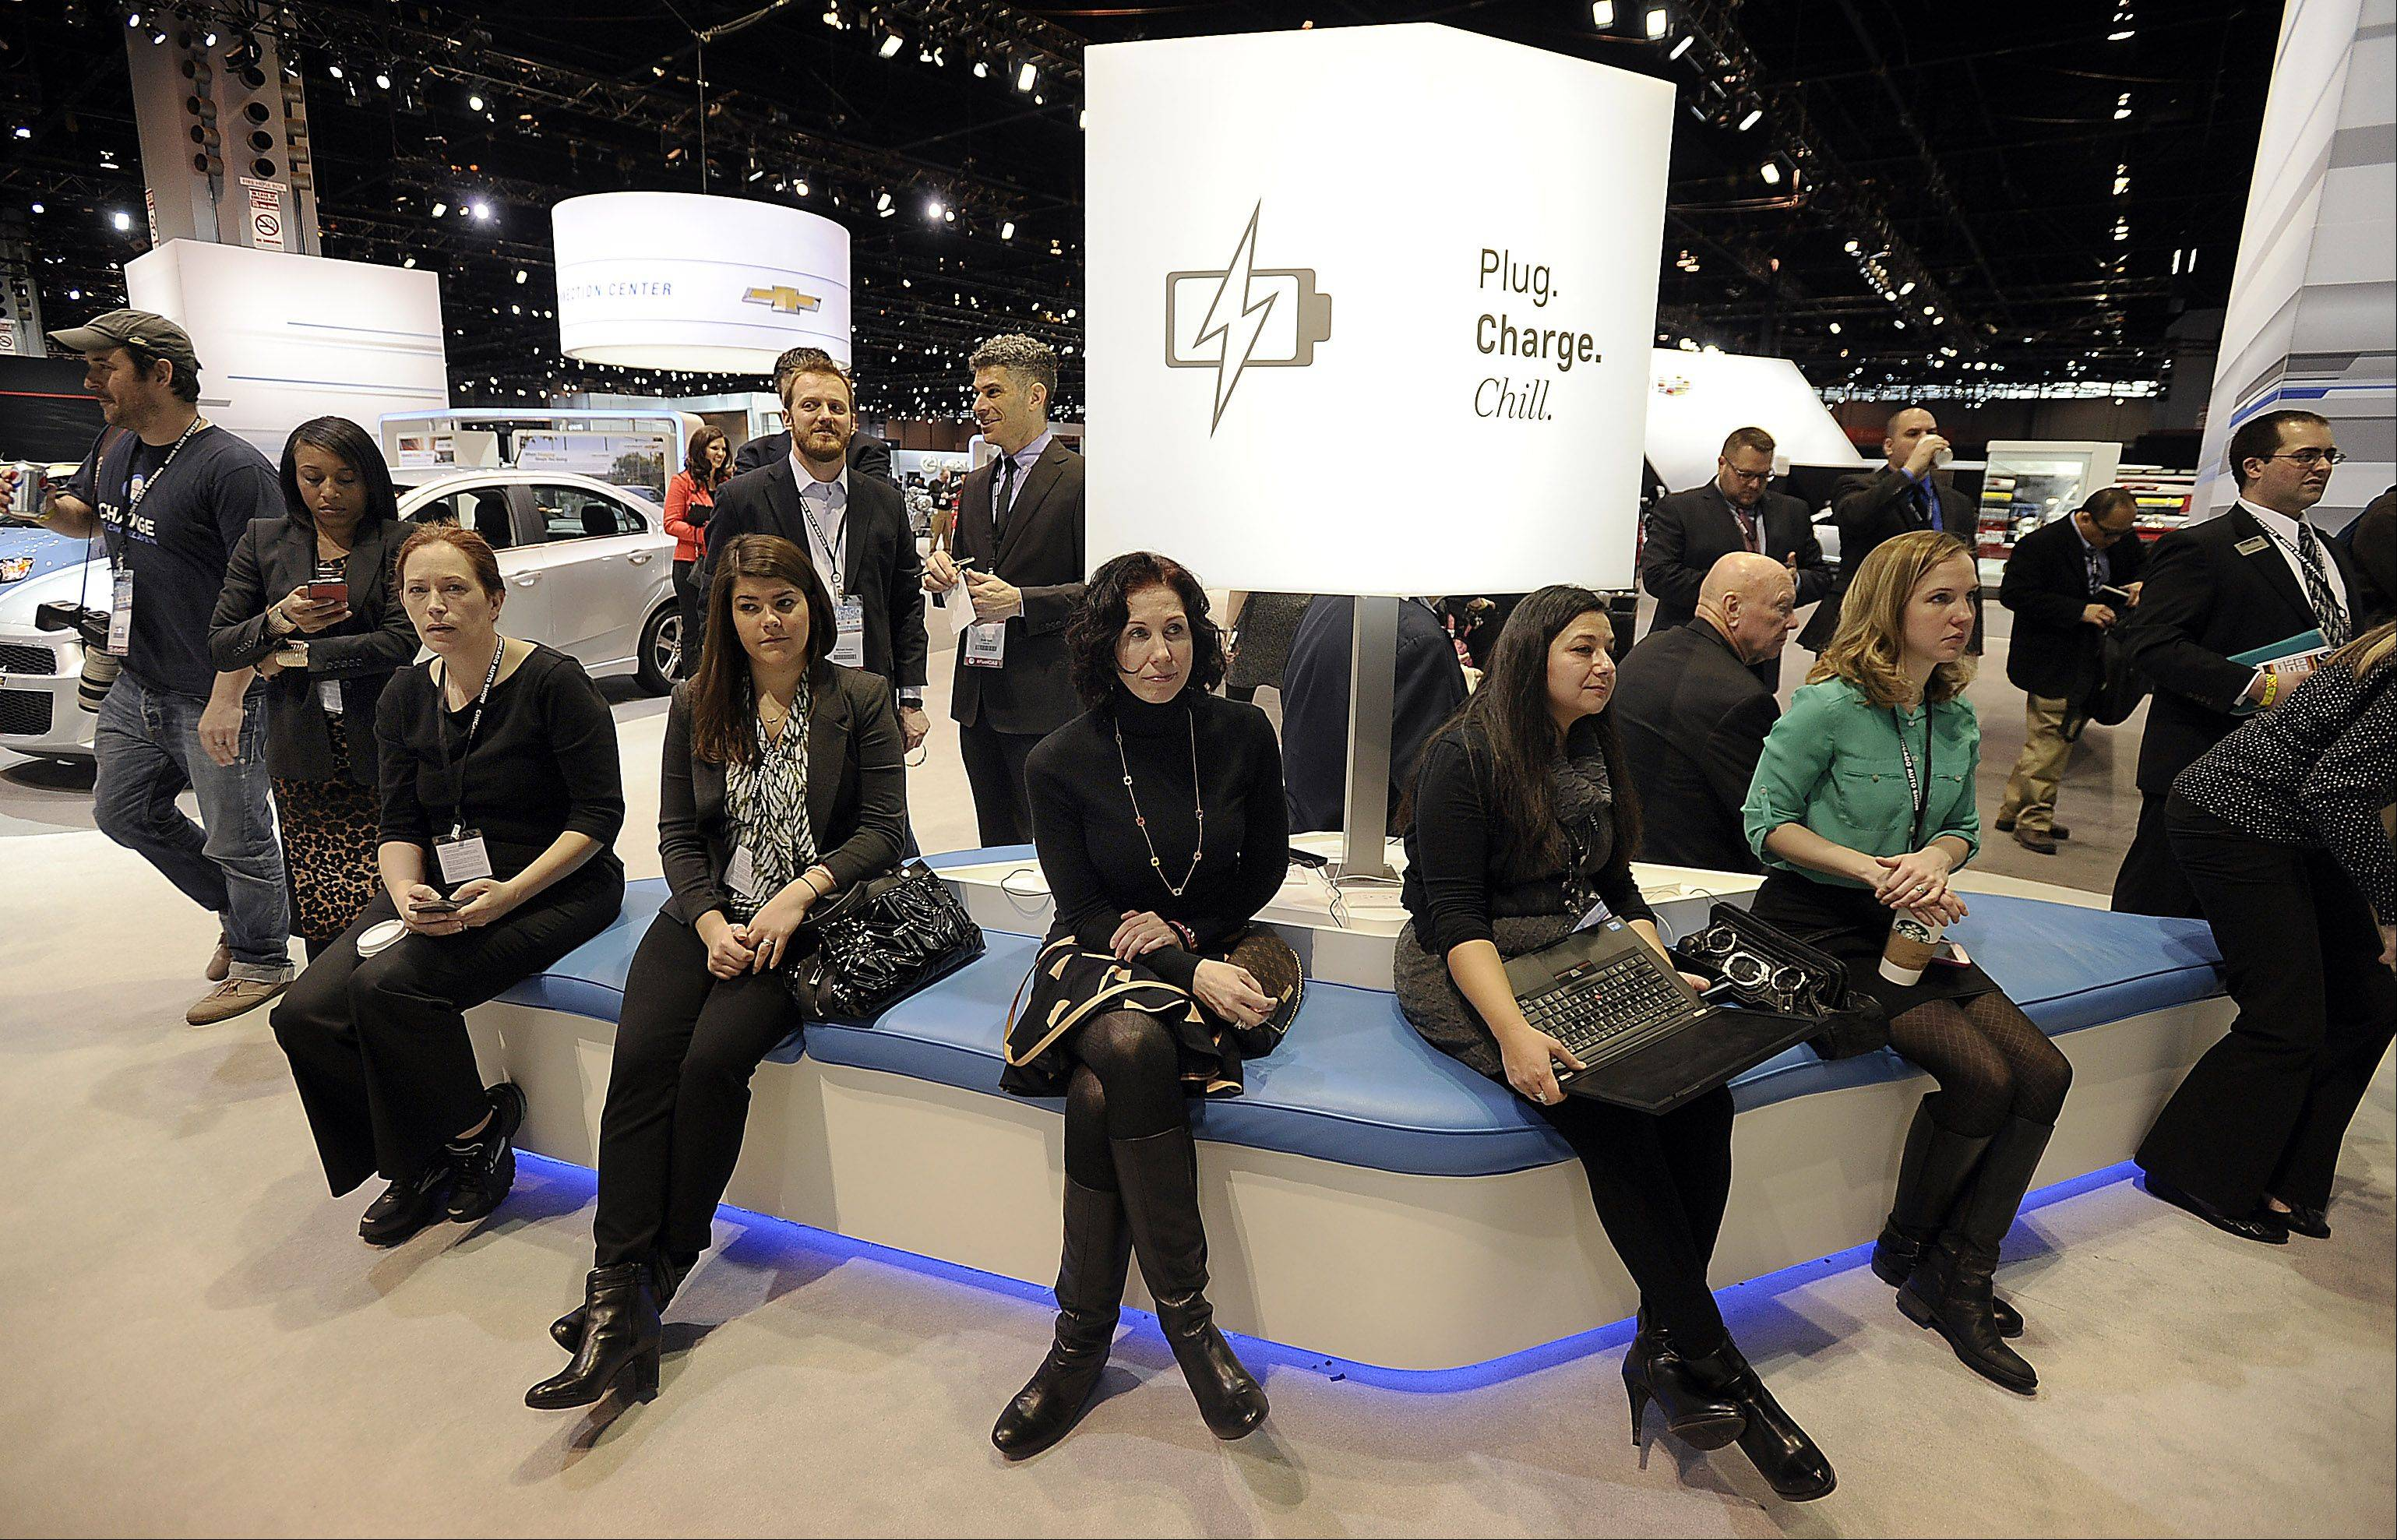 The Plug, Charge and Chill rest areas are featured at the Chicago Auto Show for 2014.